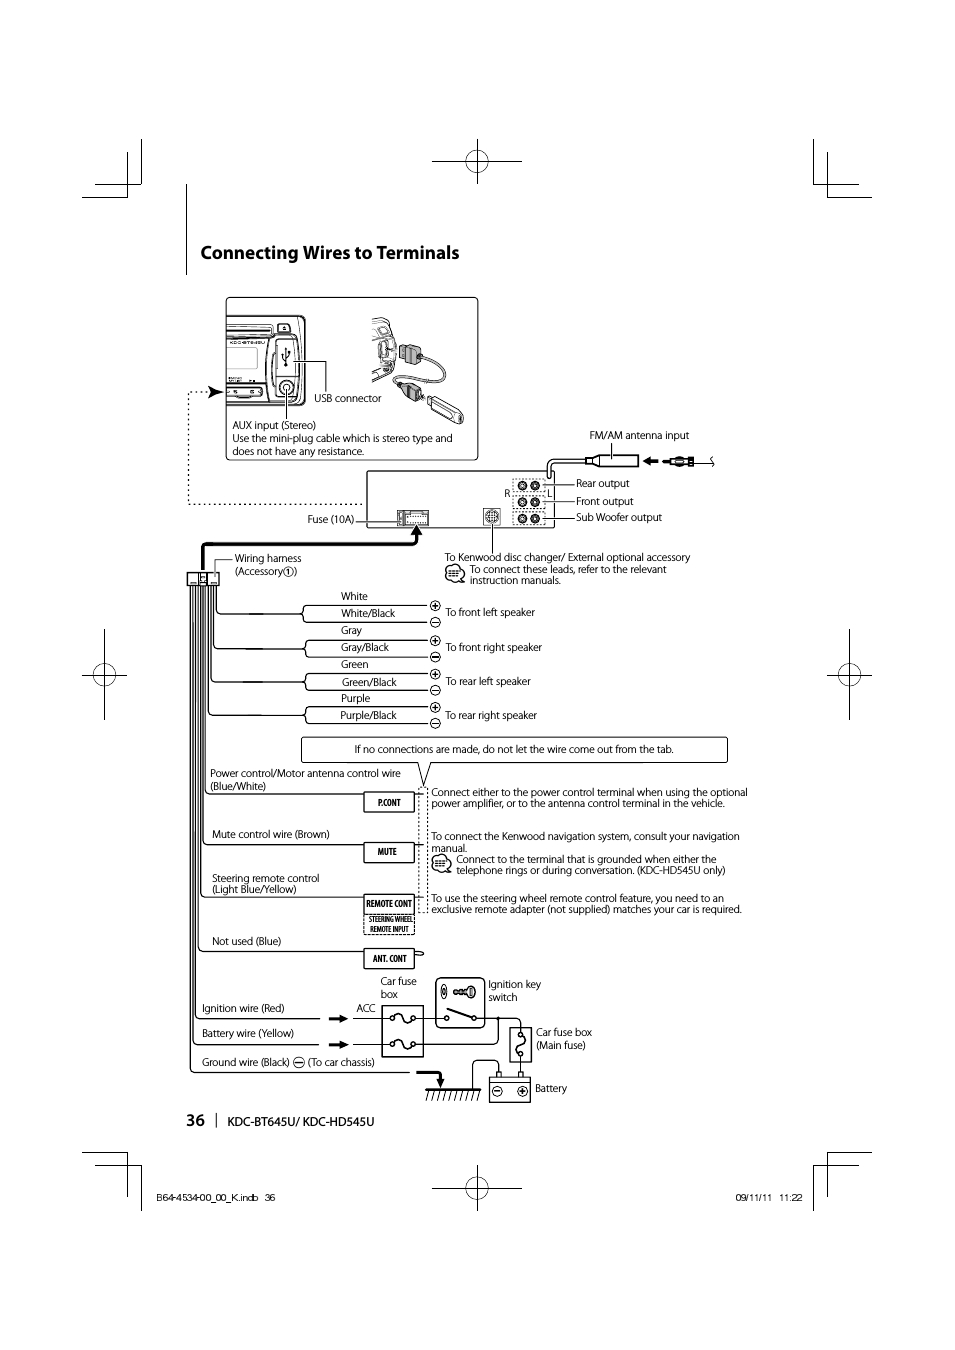 Connecting Wires To Terminals | Kenwood Kdc-Hd545U User Manual - Kenwood Kdc Wiring Diagram